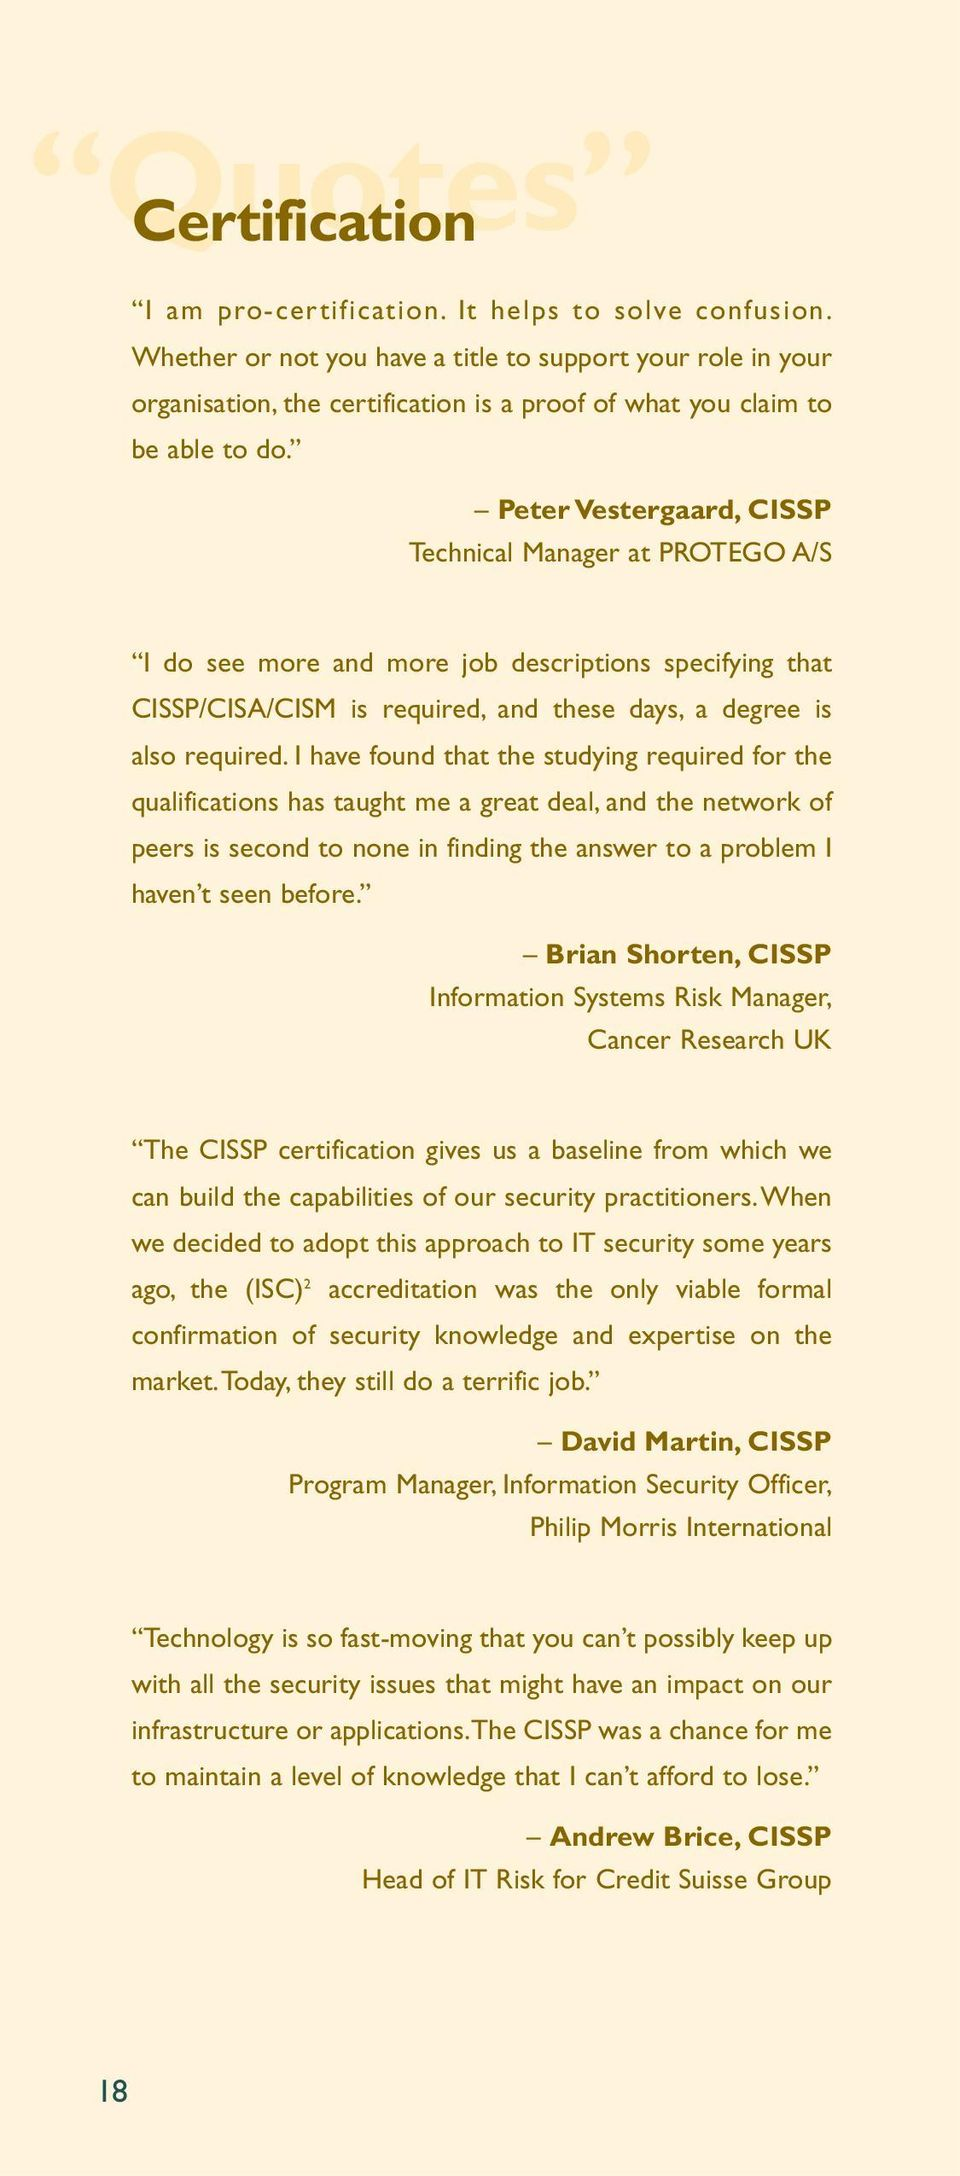 Peter Vestergaard, CISSP Technical Manager at PROTEGO A/S I do see more and more job descriptions specifying that CISSP/CISA/CISM is required, and these days, a degree is also required.